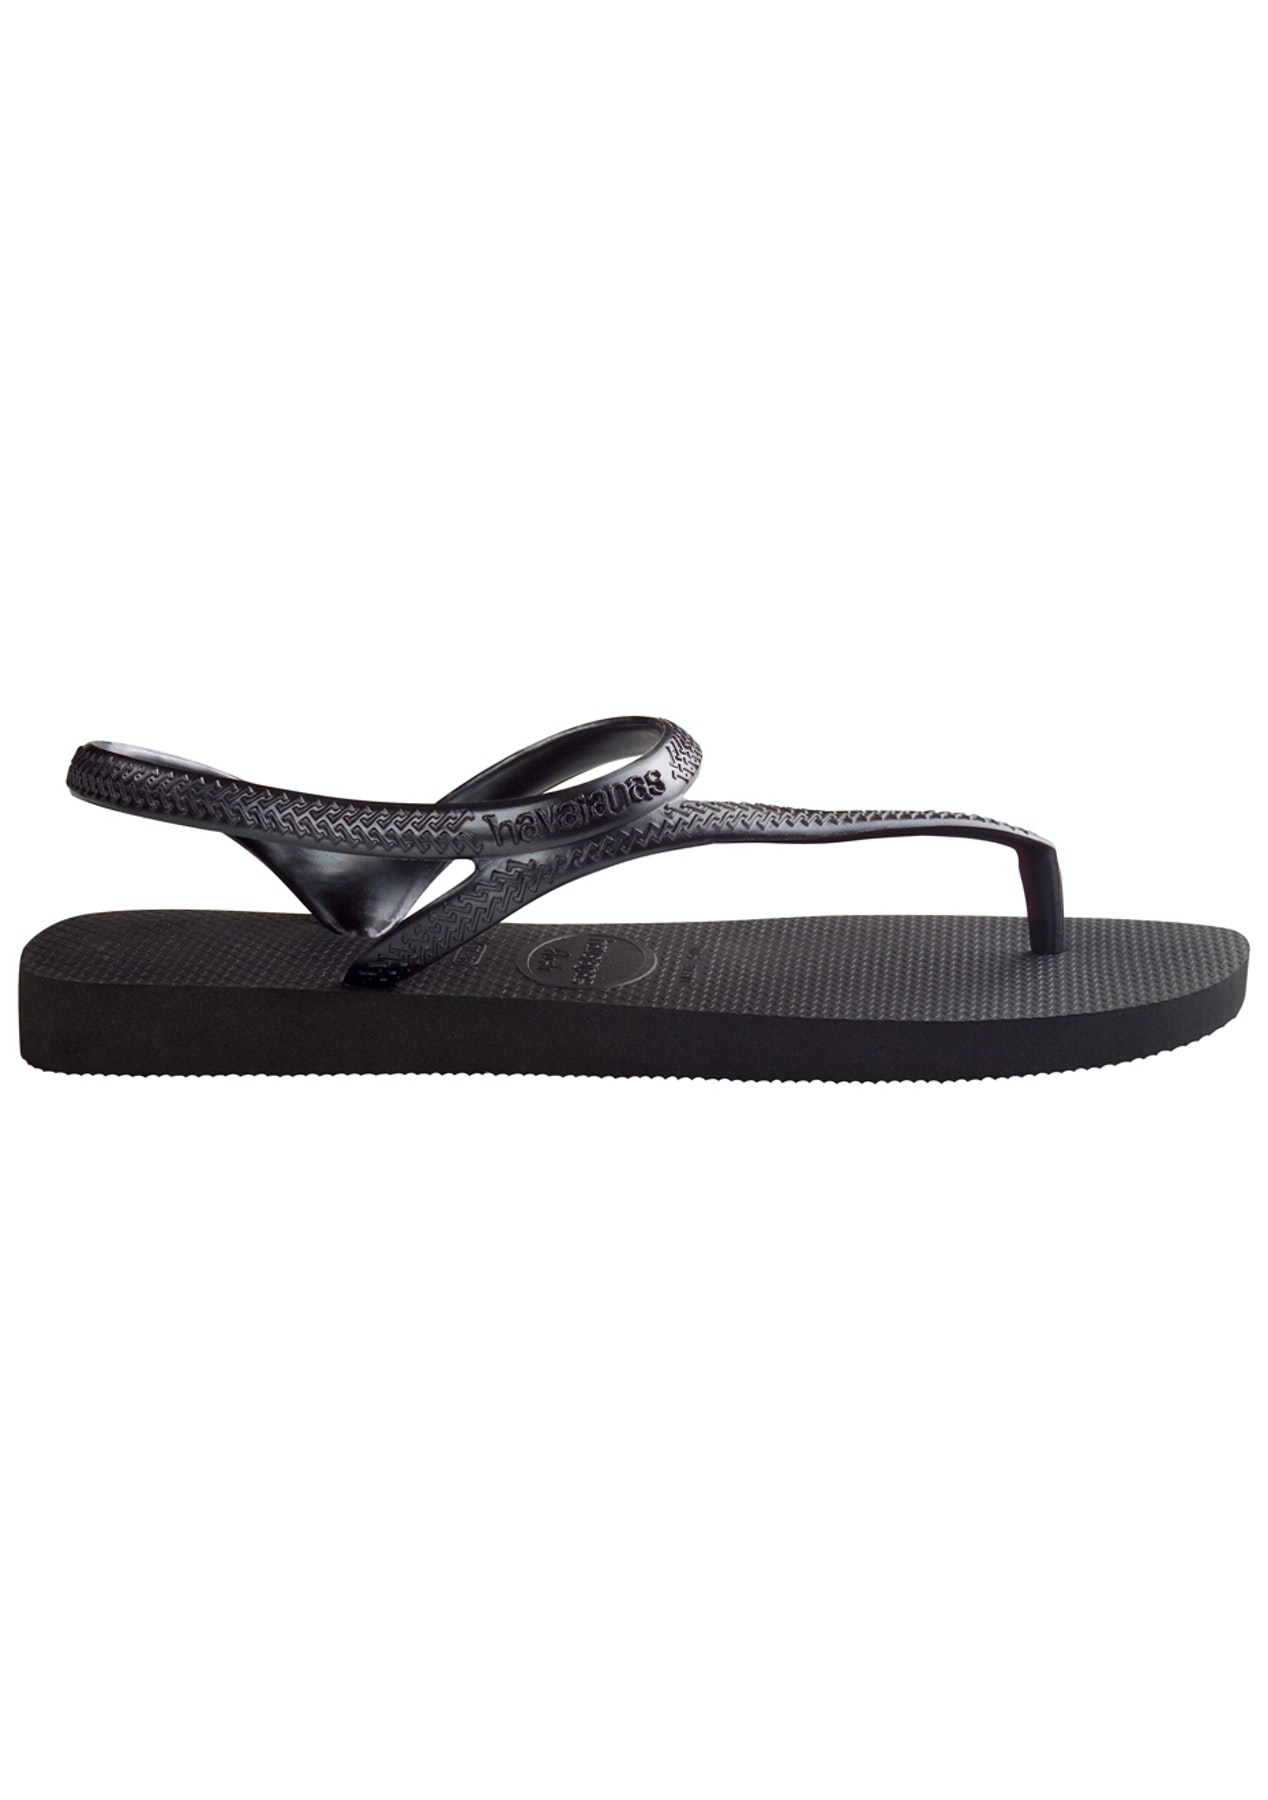 8a9b80f888580 Havaianas - Flash Urban - Black - Havaianas for the Family from  10 - Onceit